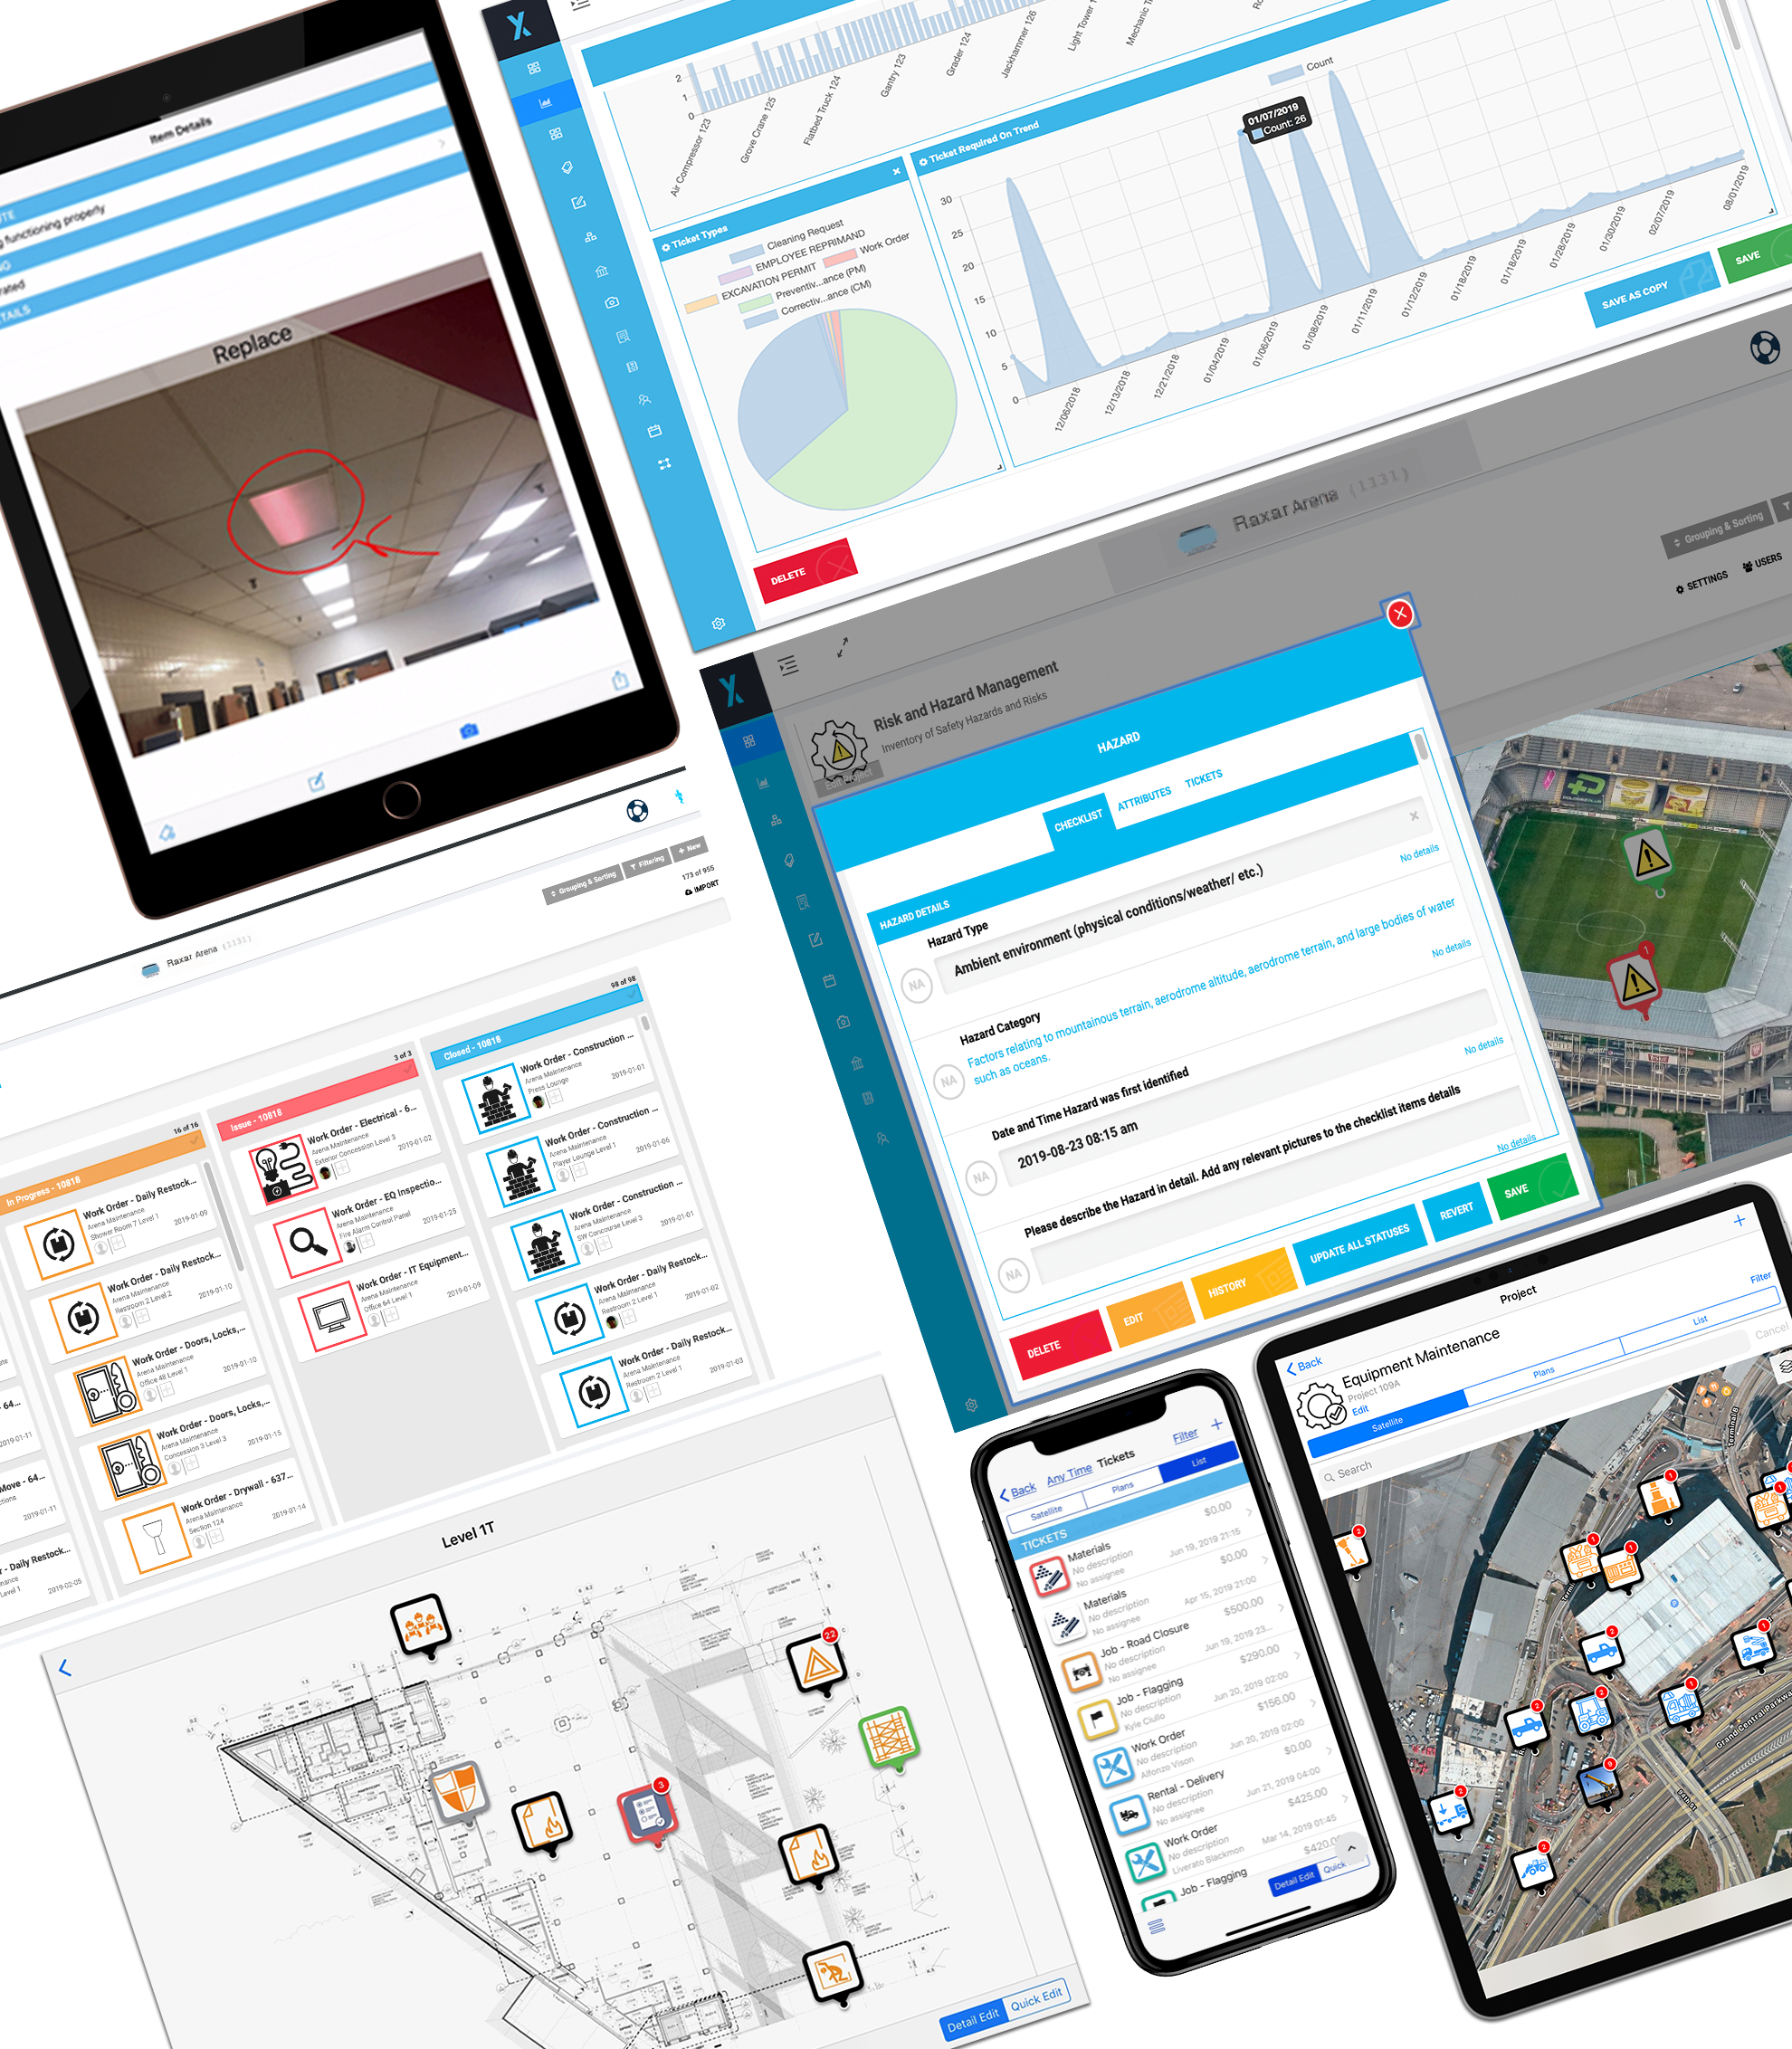 Arena and Stadium management software platform